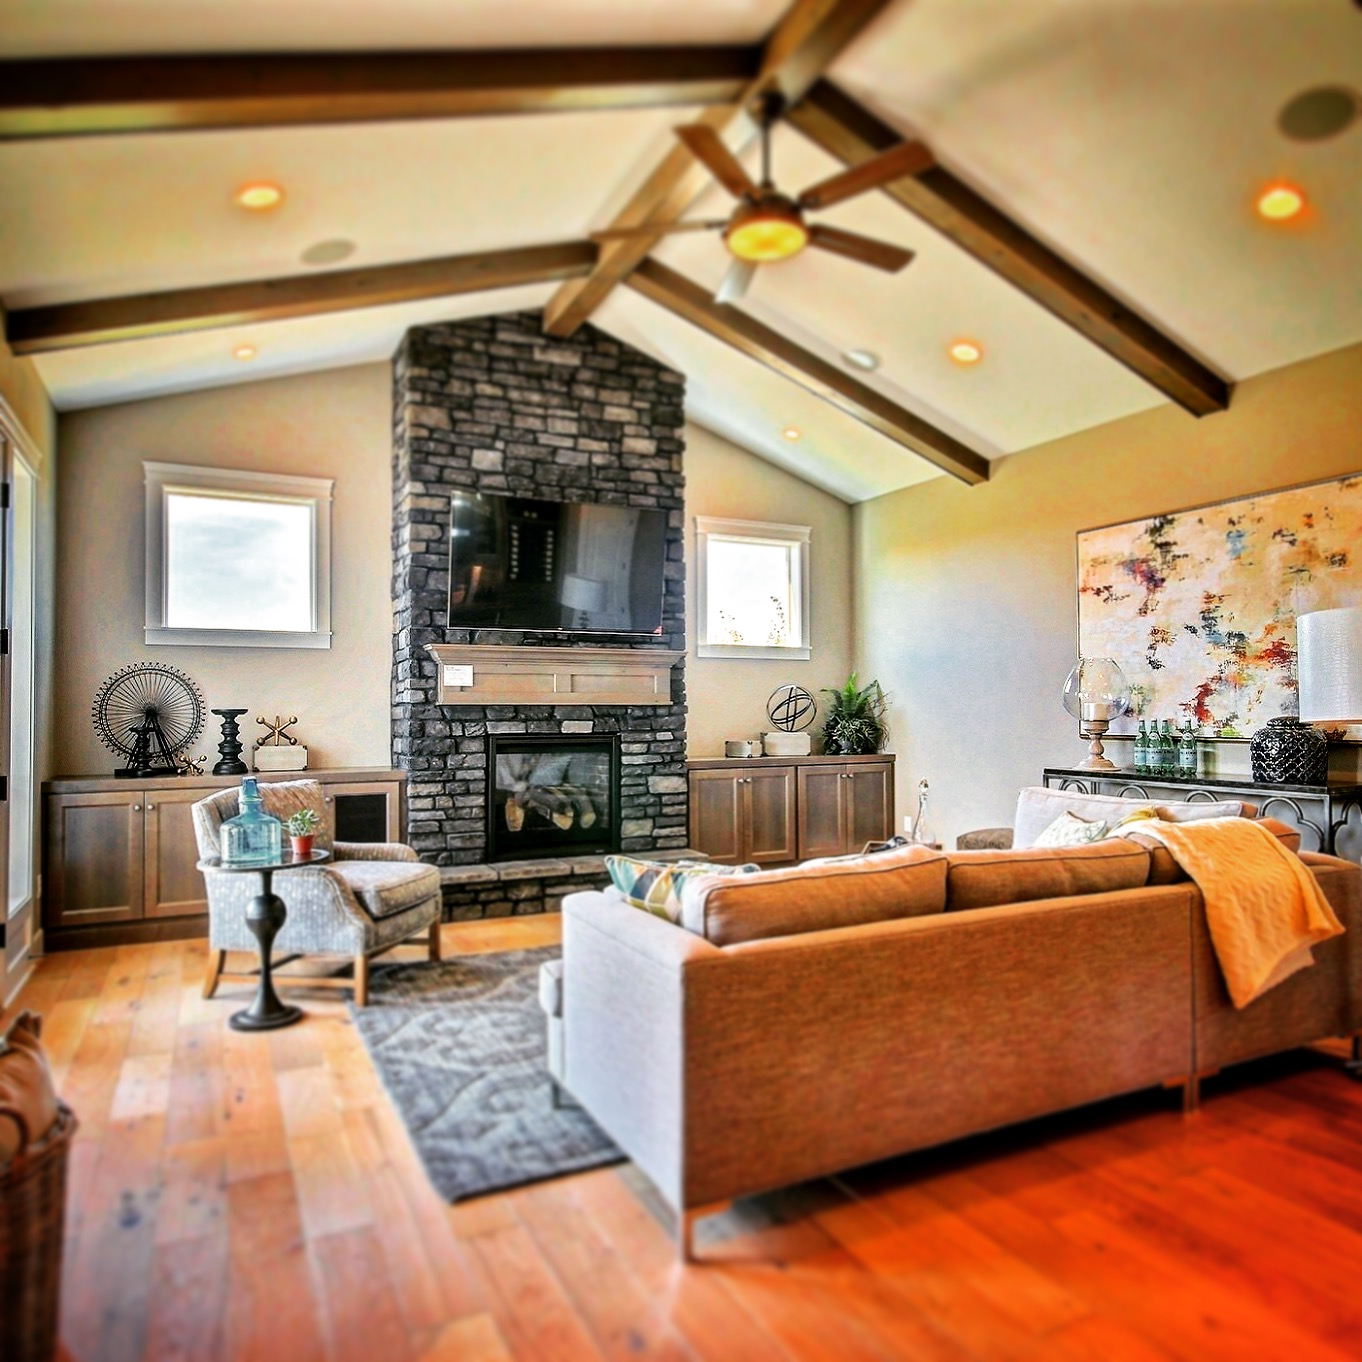 Blog nw natural parade of homes for Vancouver parade of homes